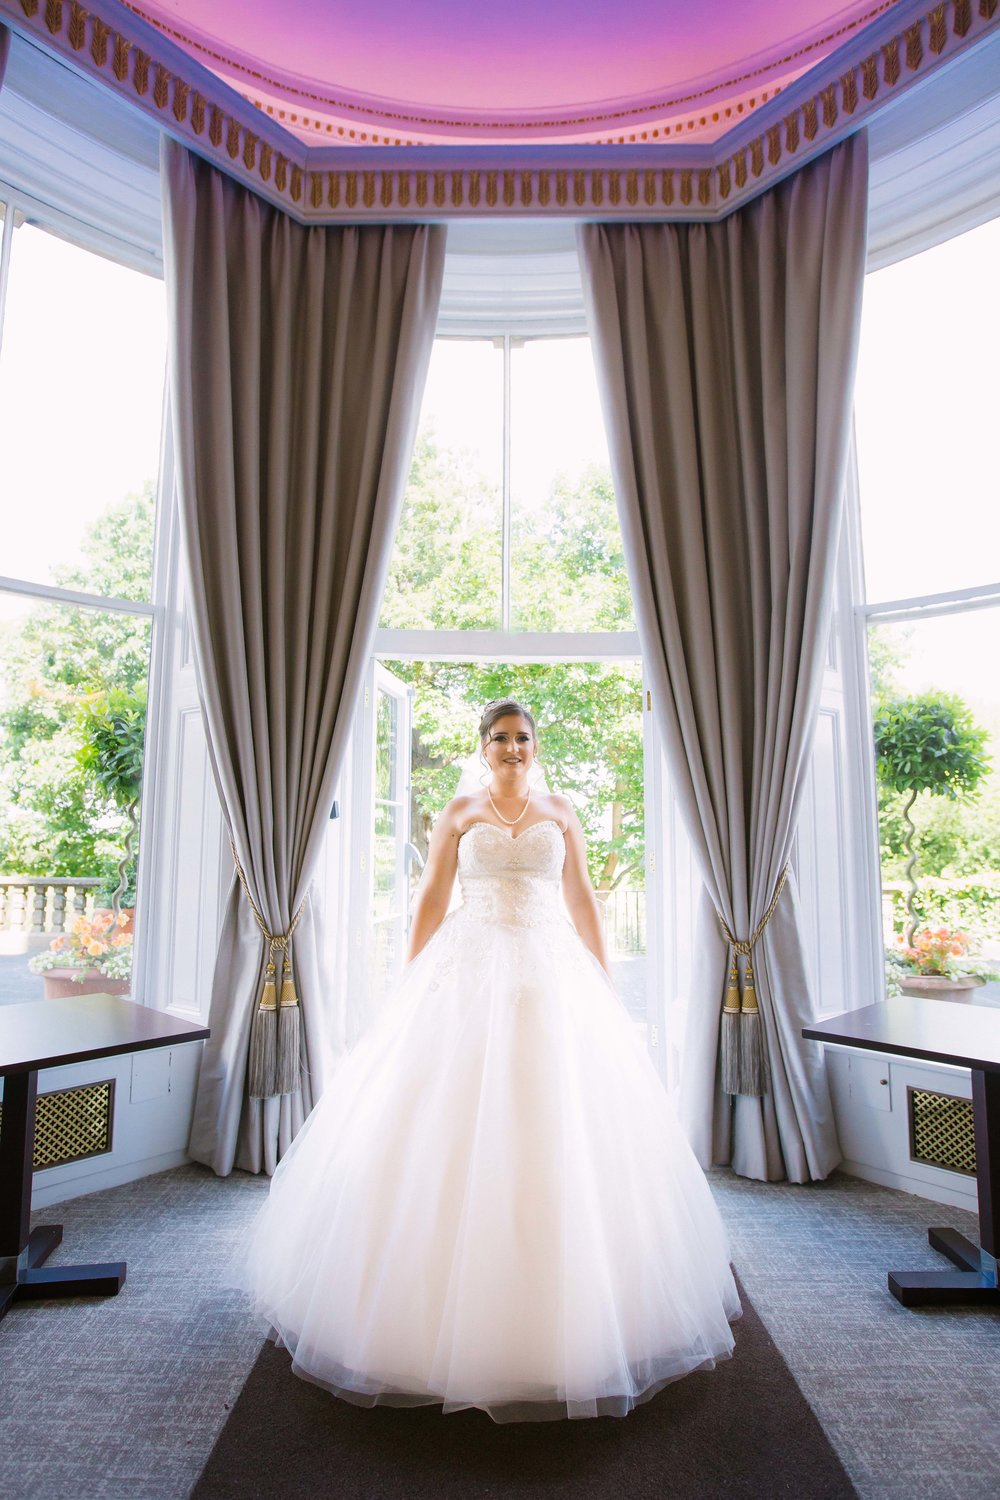 HamptonCourt-Wedding-Weybridge-Surrey-London-OatlandsParkHotel-14